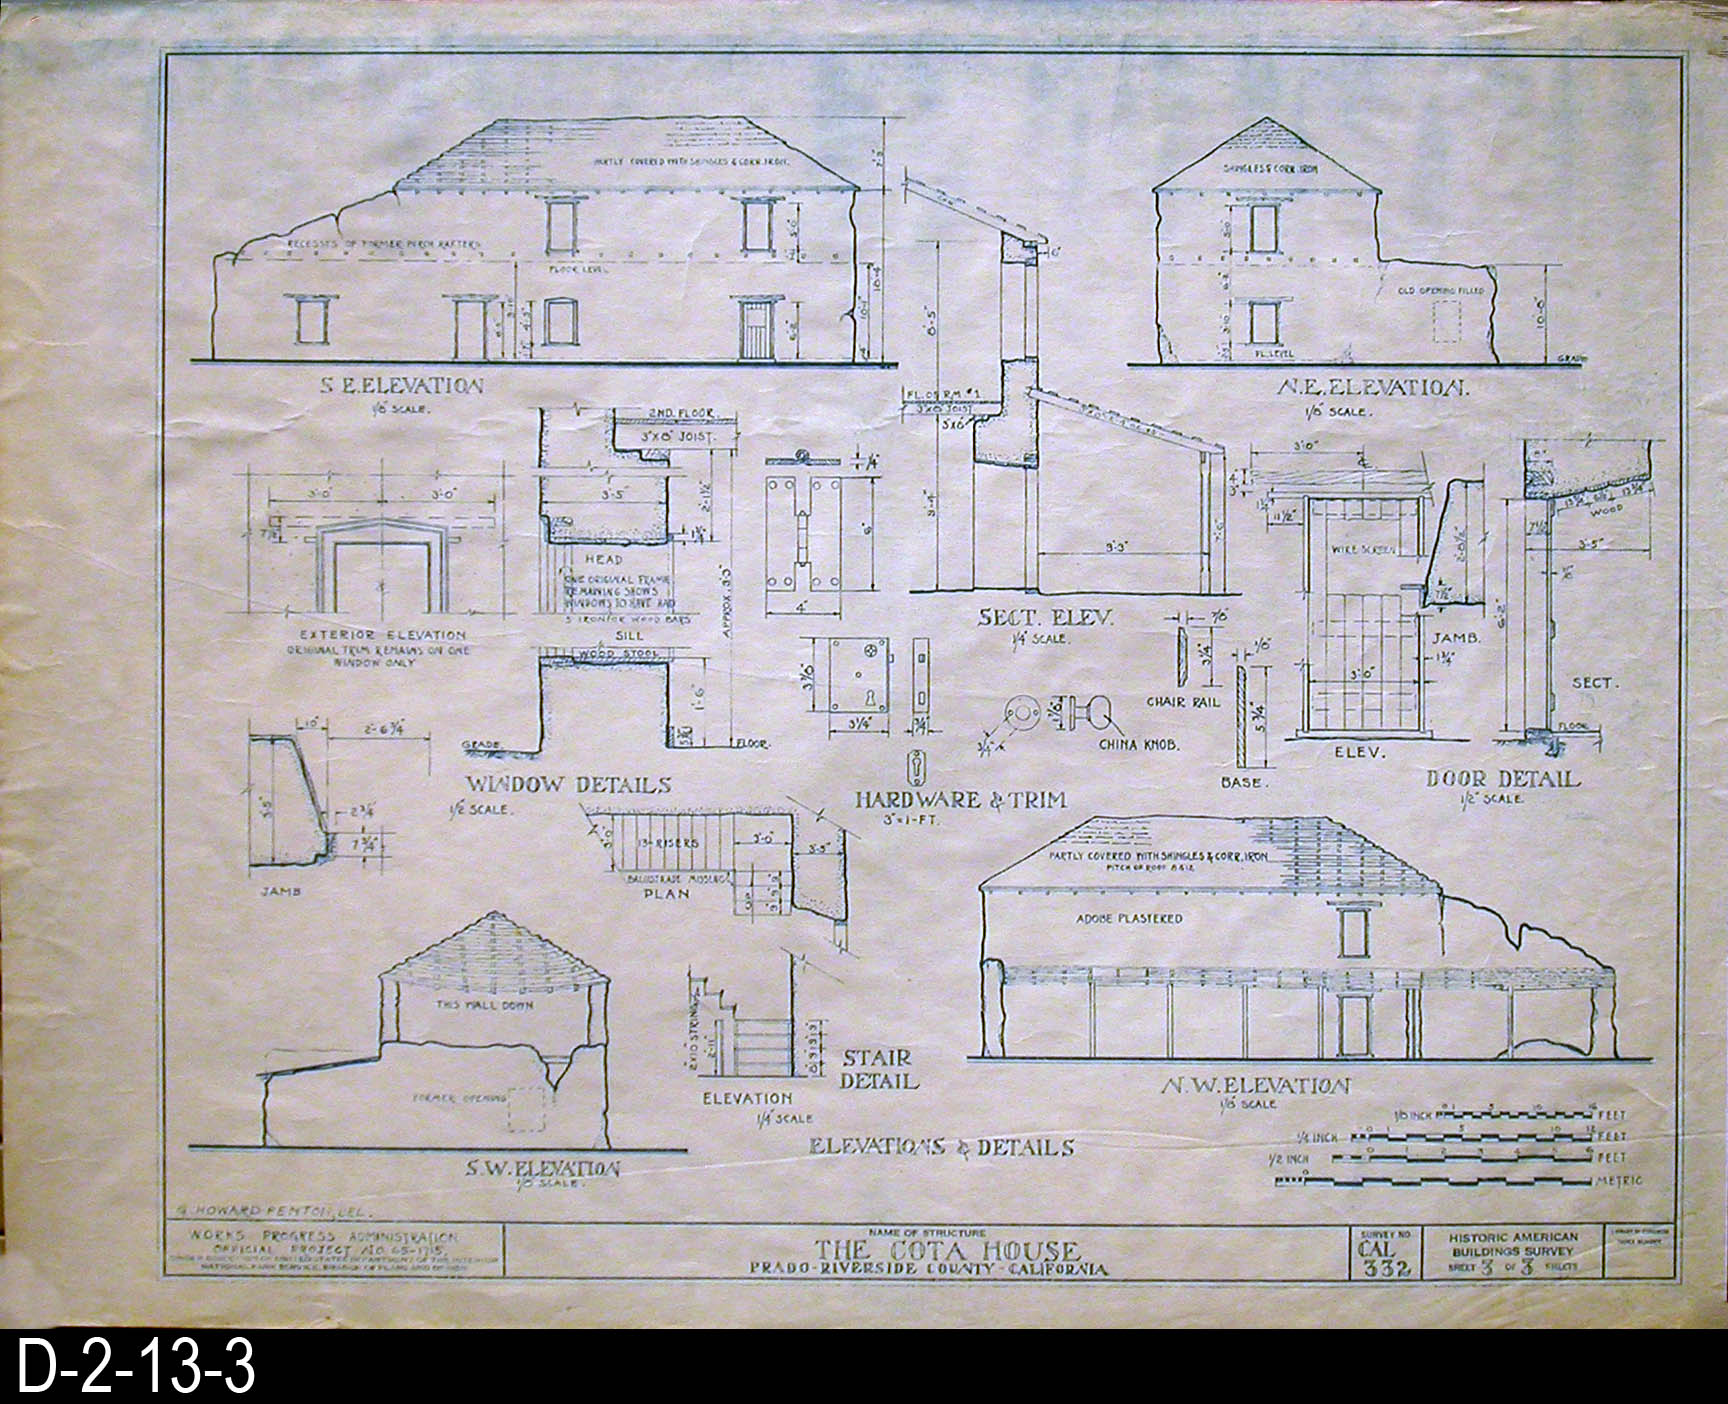 Blueprint cota house historic american buildings survey blueprint cota house historic american buildings survey elevations and details malvernweather Image collections